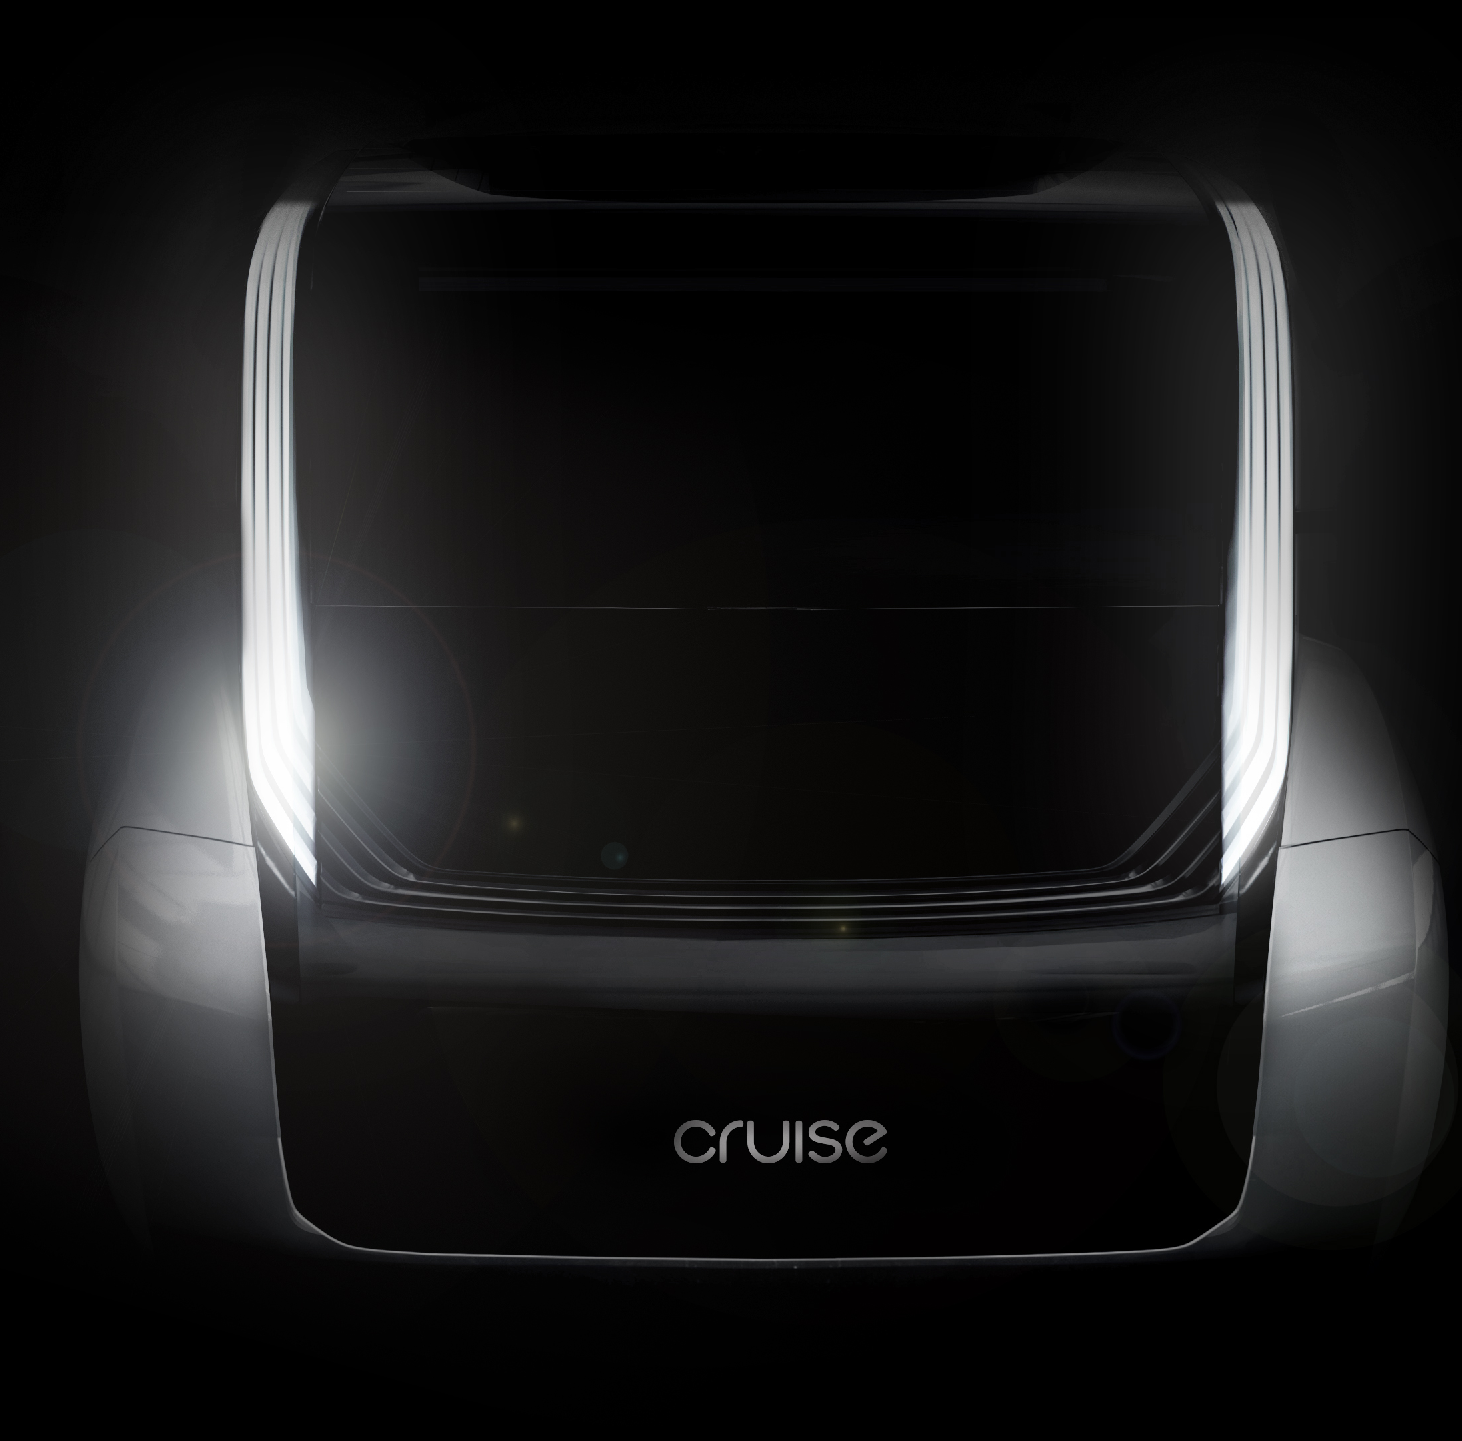 Honda to join GM, Cruise in building a robot car